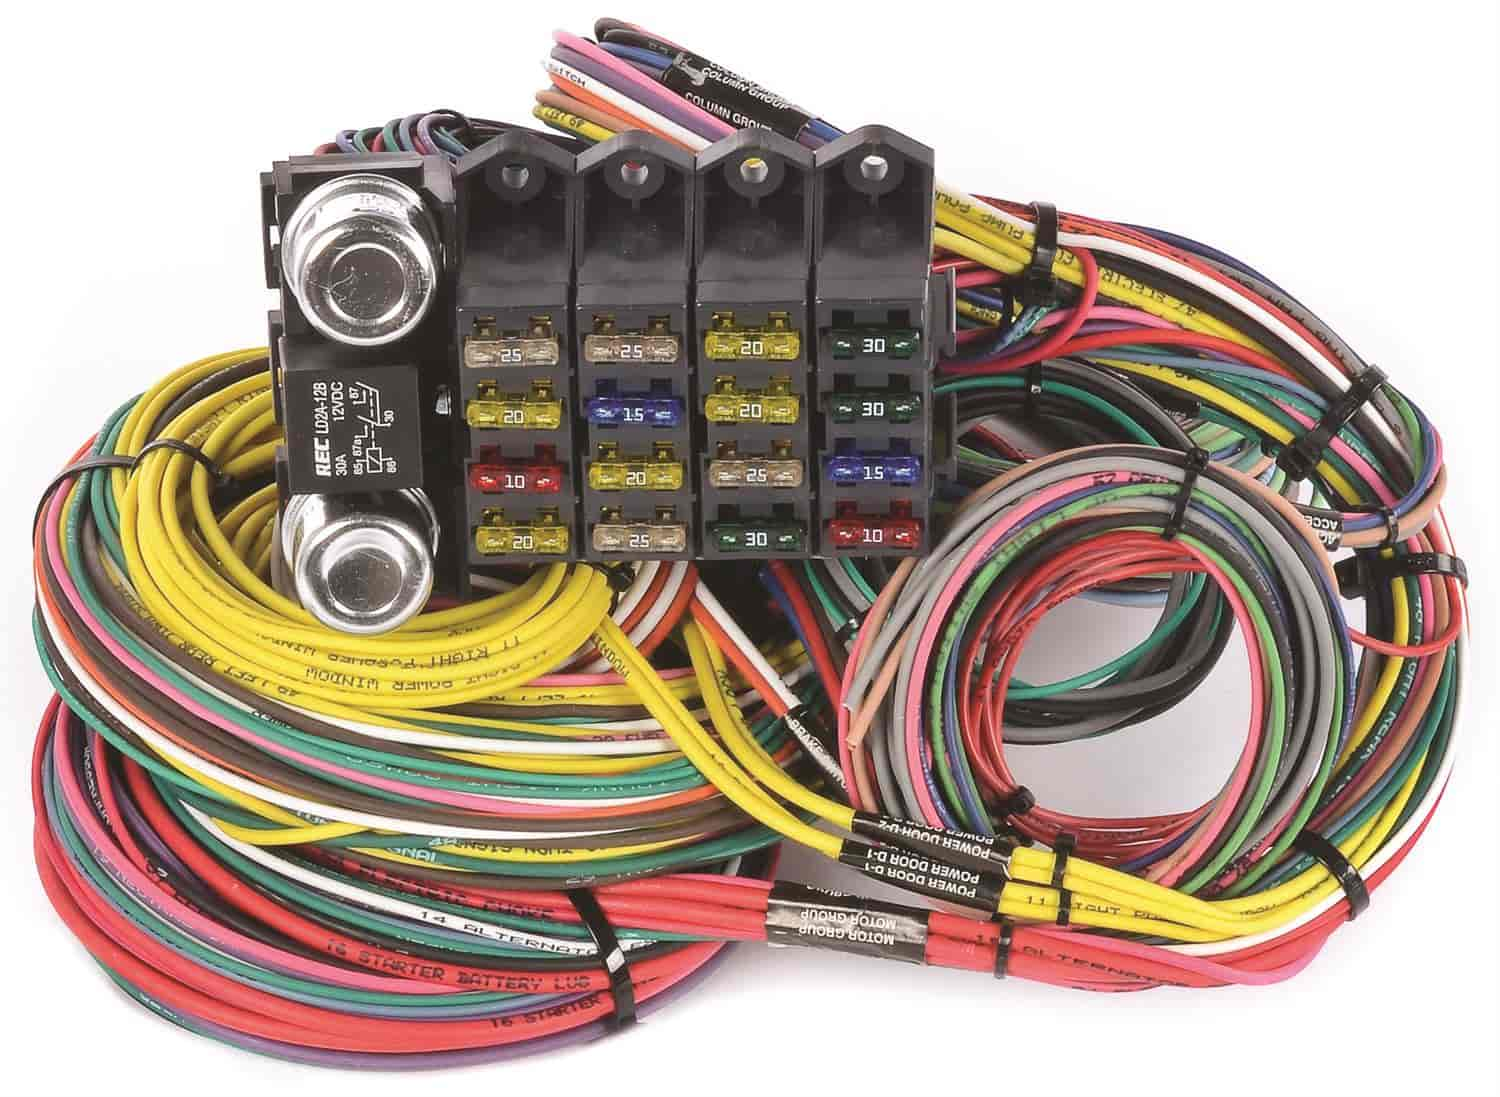 555 10405 jegs performance products 10405 universal wiring harness, 20 jegs universal wiring harness at webbmarketing.co